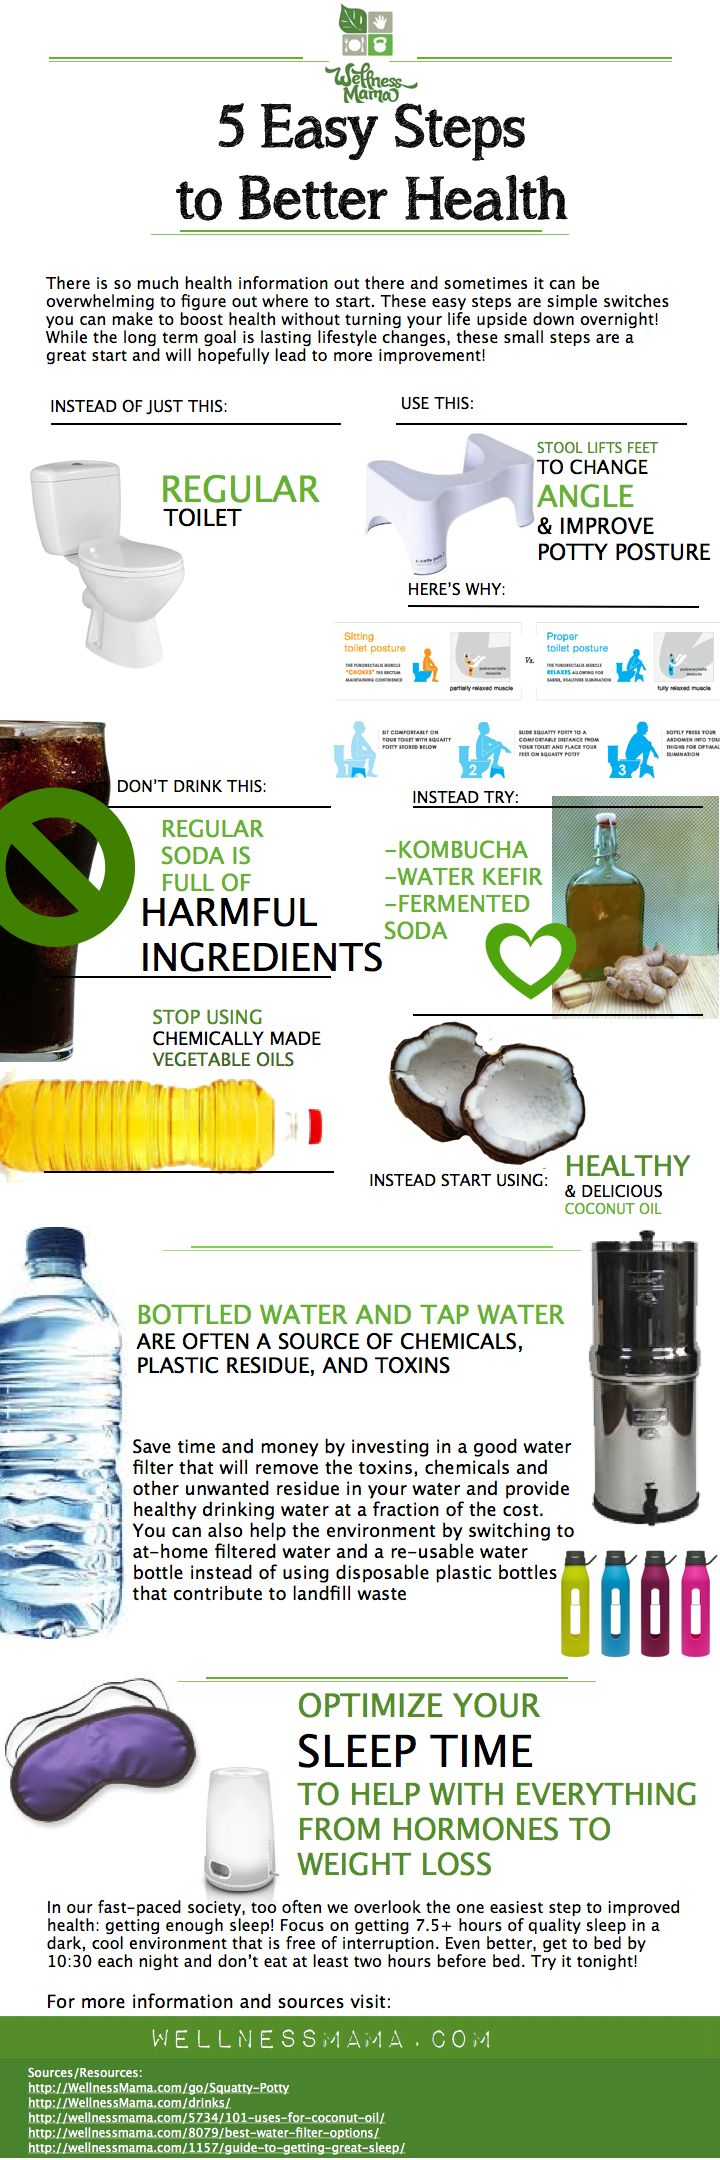 5 Steps to Better Health [Infographic]